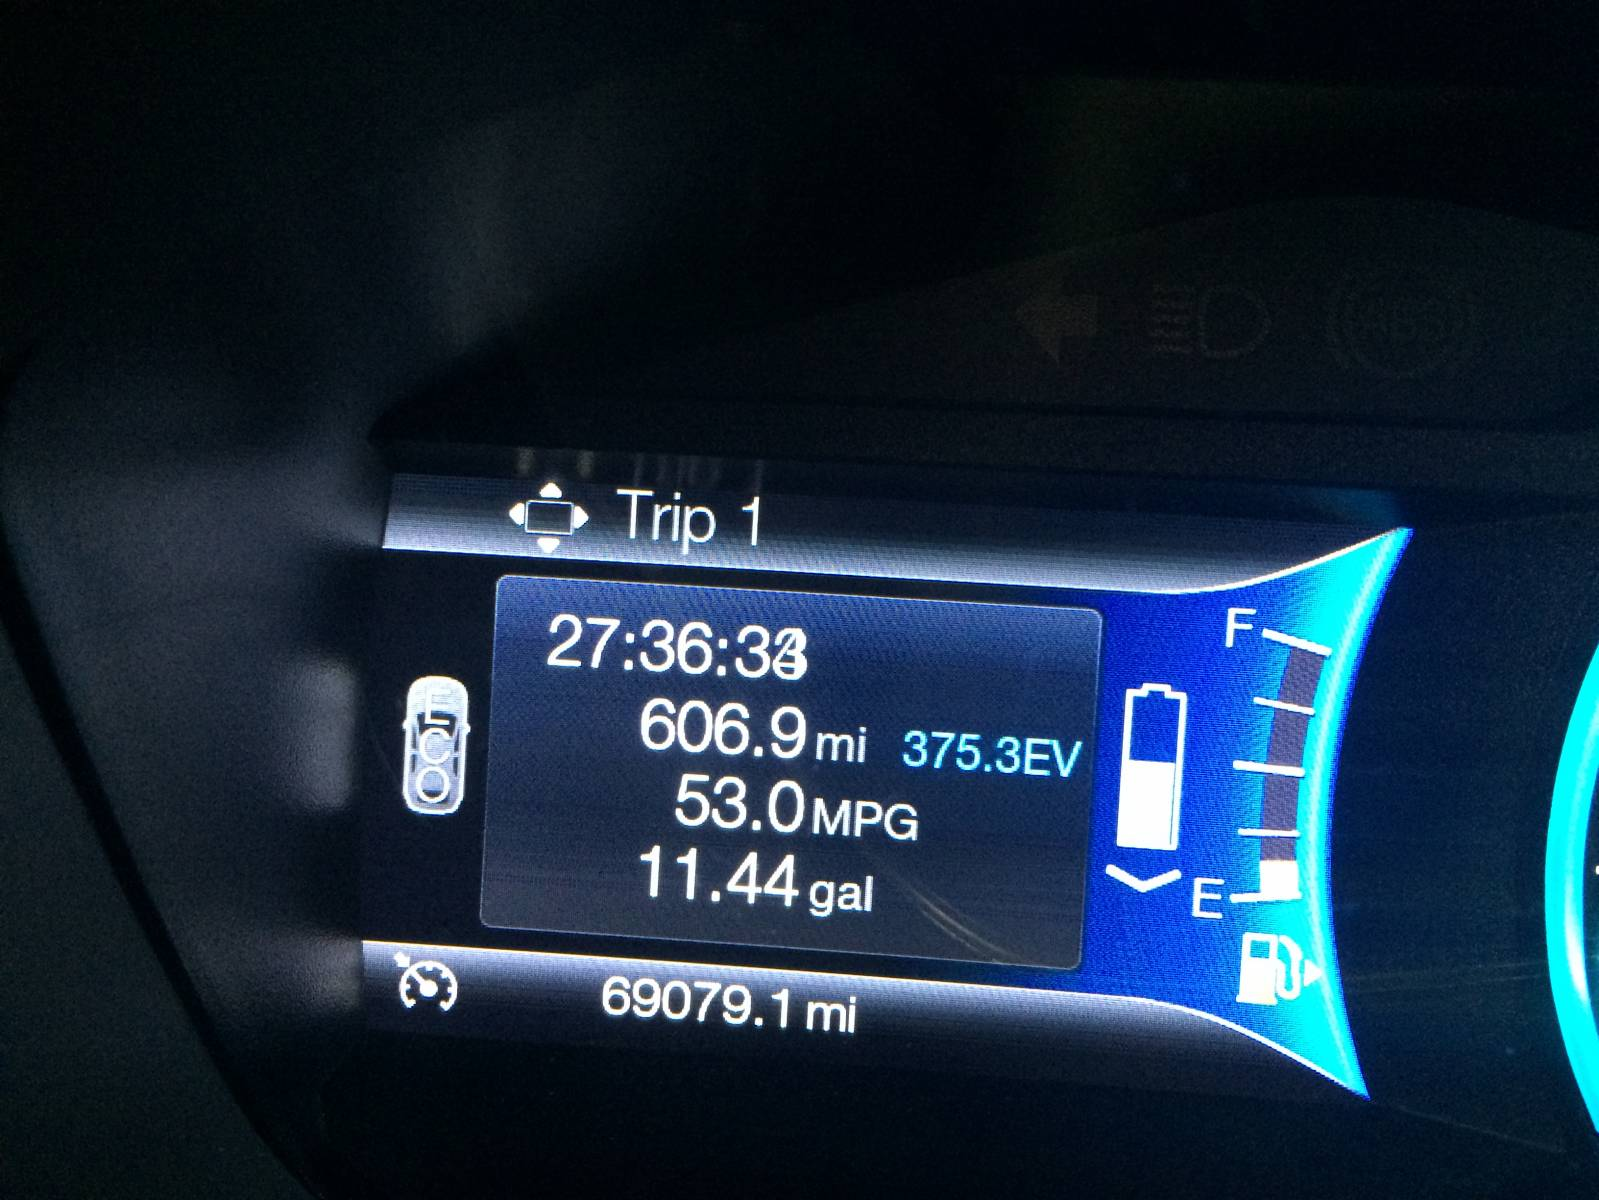 Broke 600 miles on a single tank!